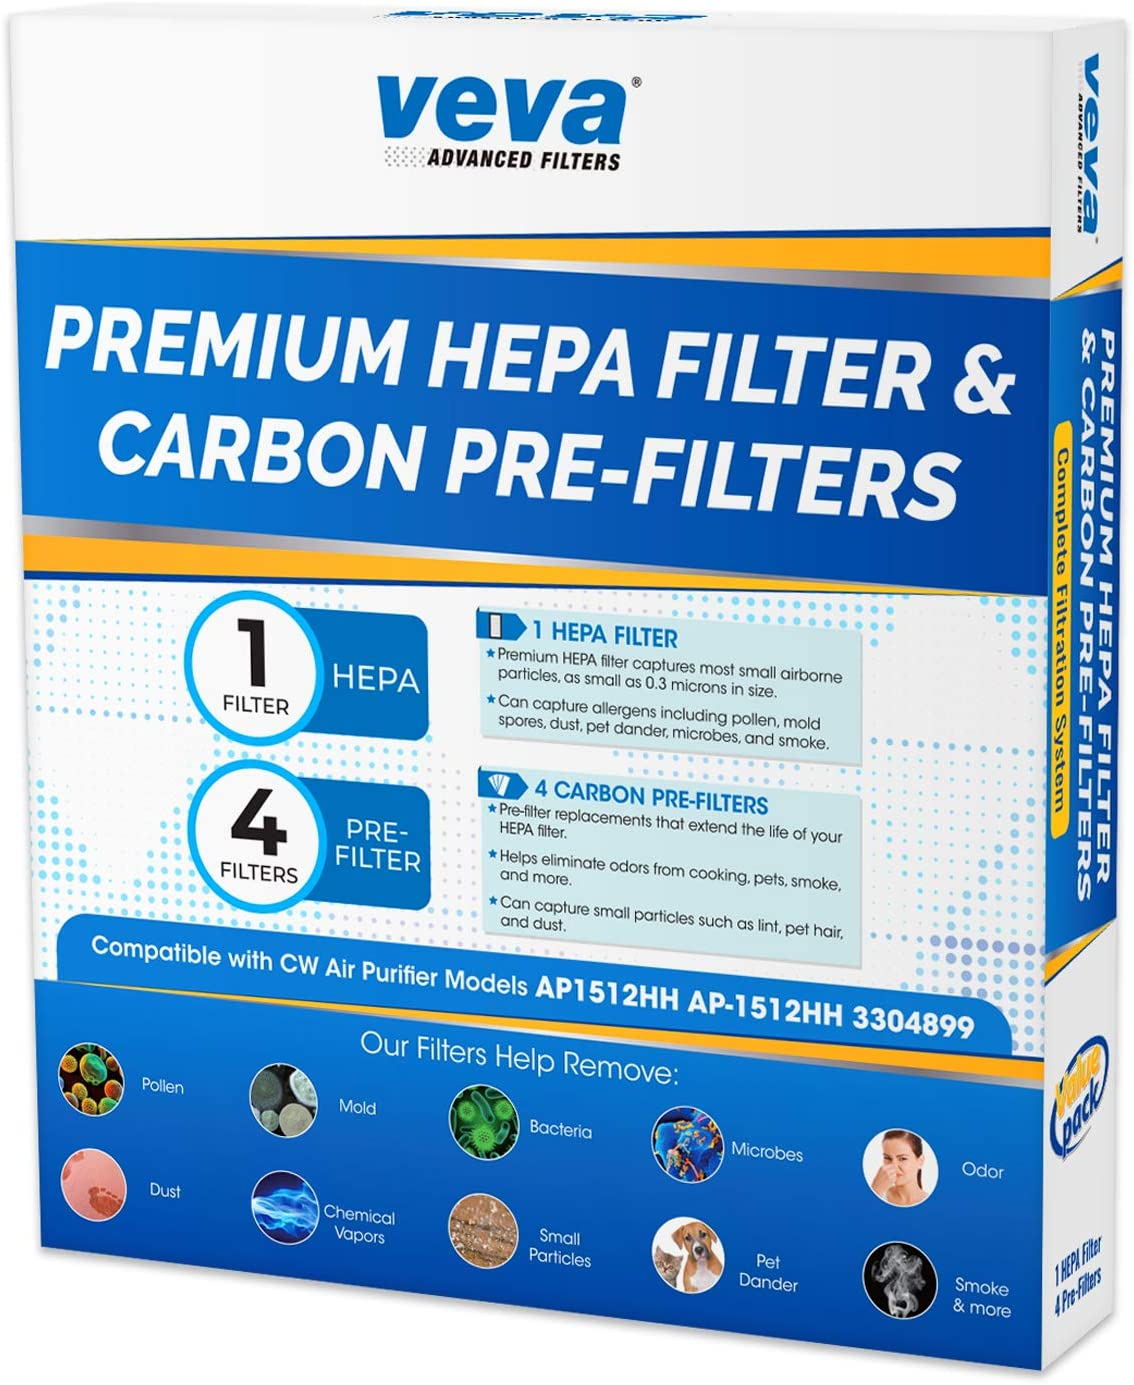 VEVA 1 Premium HEPA Filter Including 4 Carbon Pre Filters Compatible with AP-1512HH 3304899 CW Air Purifier Advanced Filters